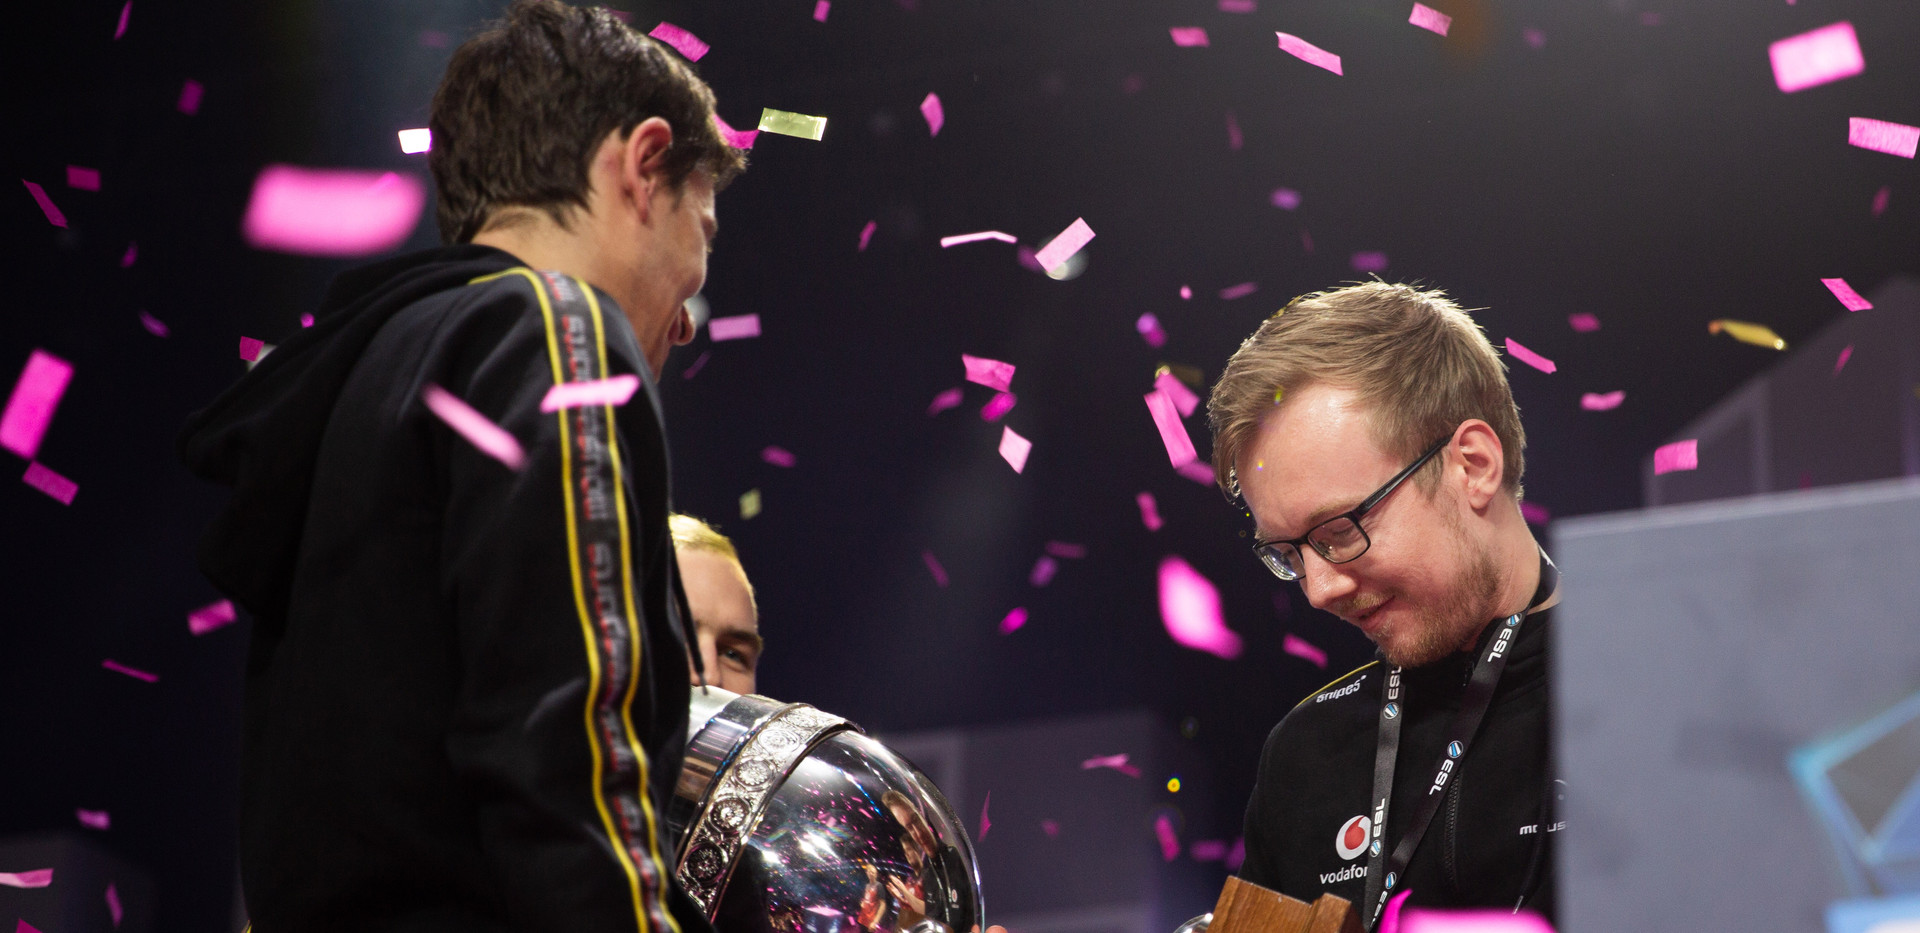 chrisj Holding Trophy